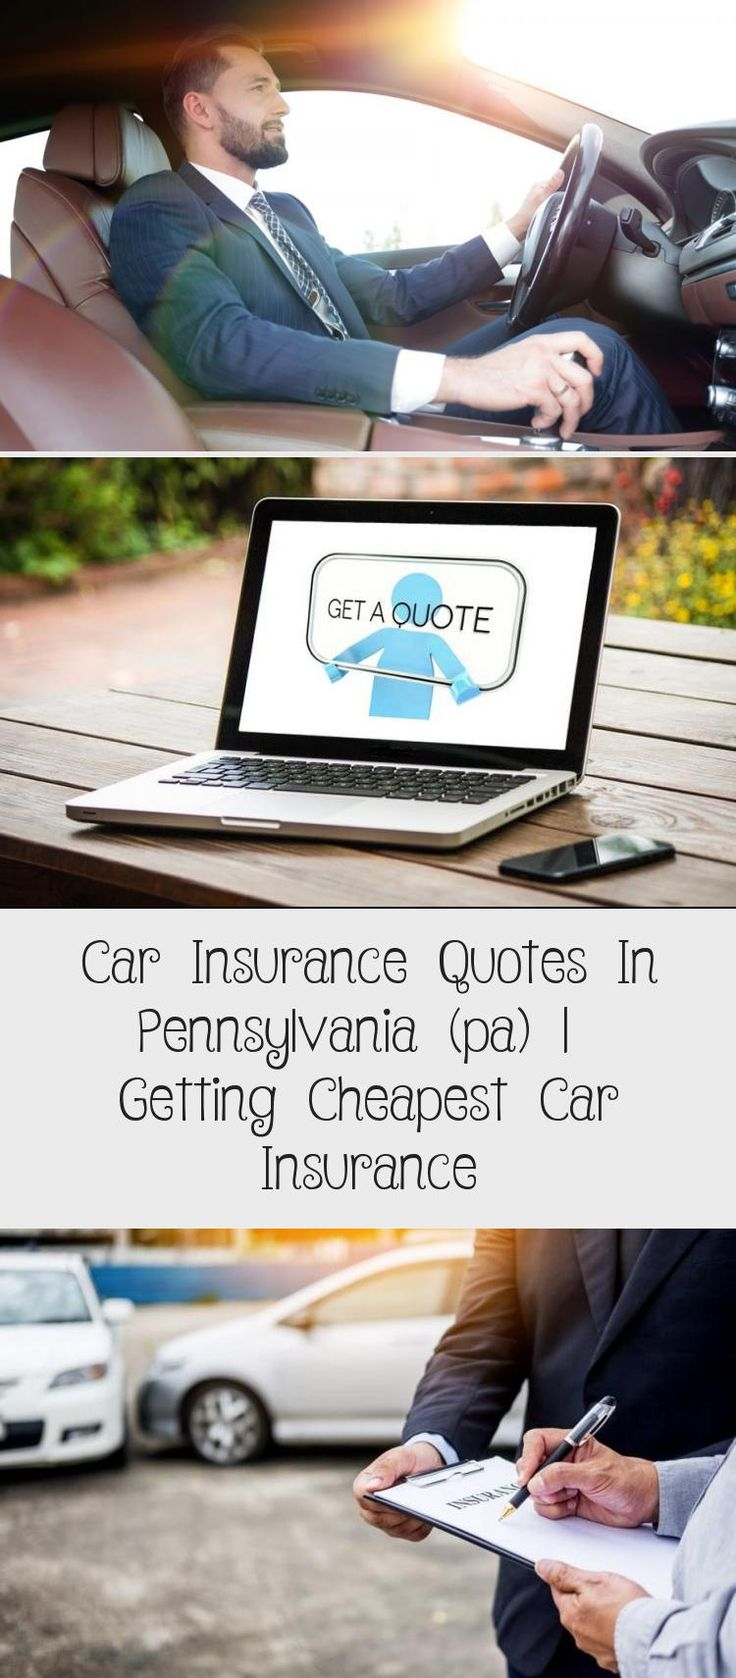 Car Insurance Quotes in Pennsylvania (PA) Getting